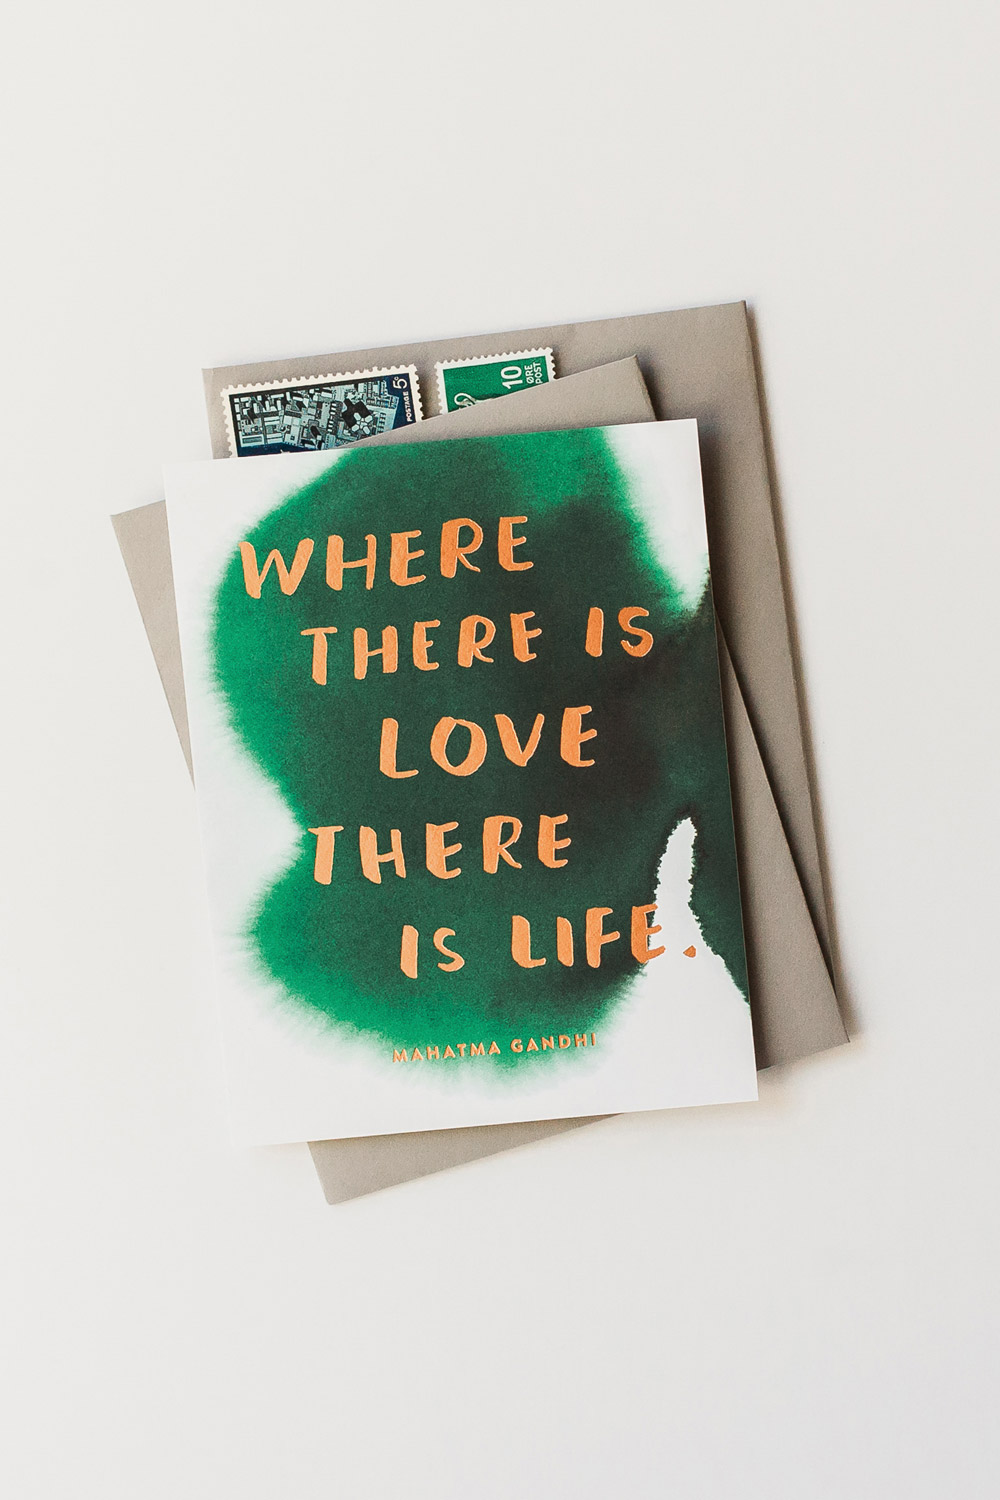 fc142-where-there-is-love-there-is-life-stamps.jpg